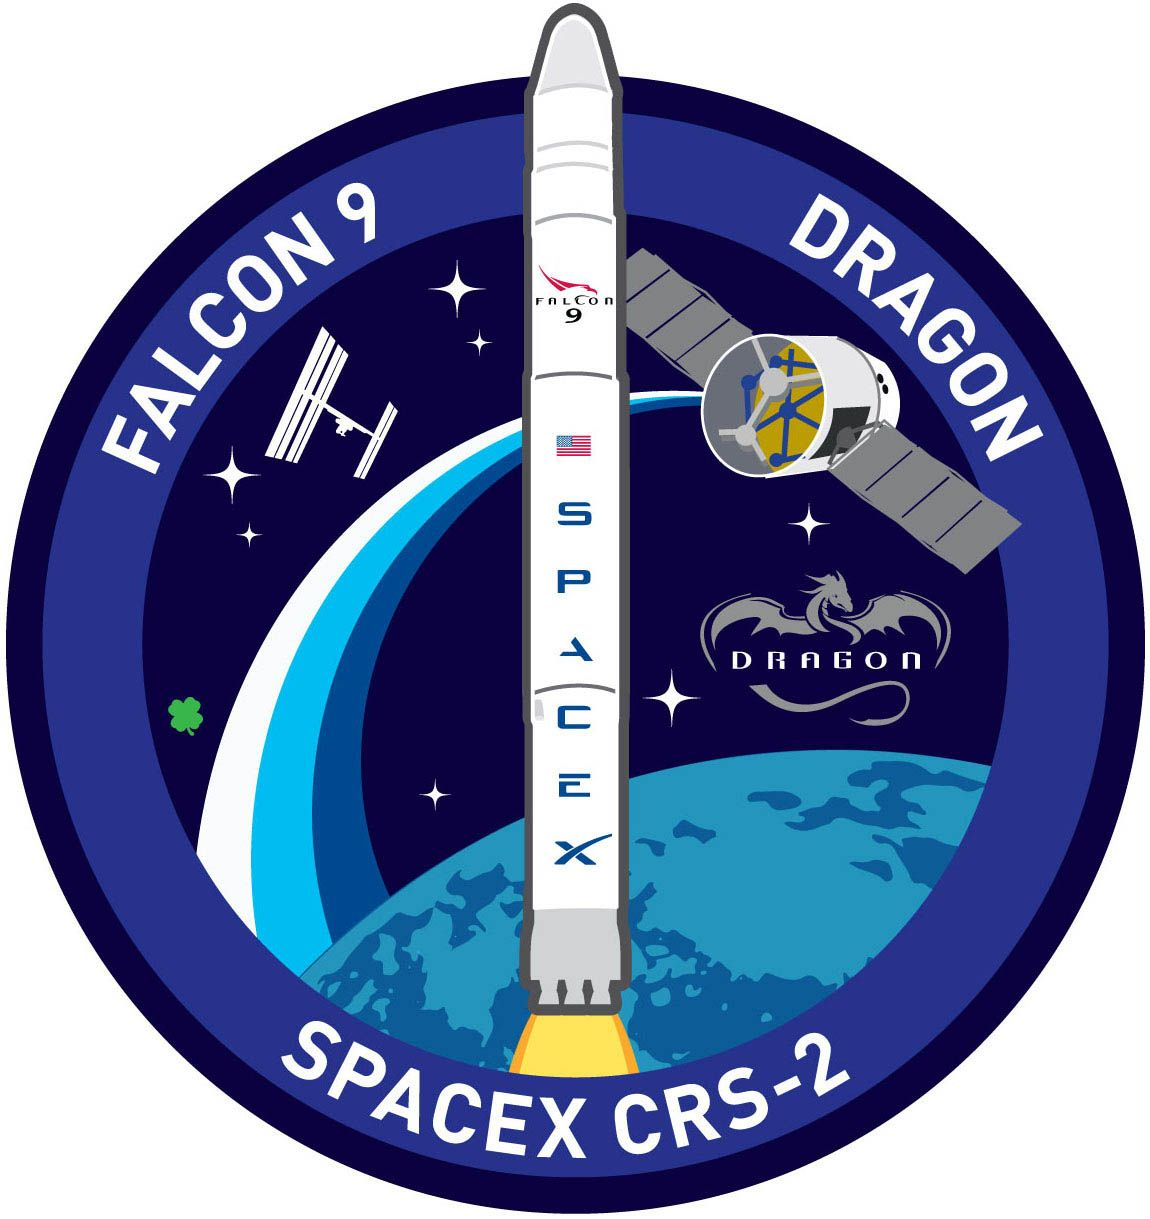 Mission Patches On Mission 4 To The International Space: SpaceX's CRS-2 Mission Patch For The March 2013 Flight To